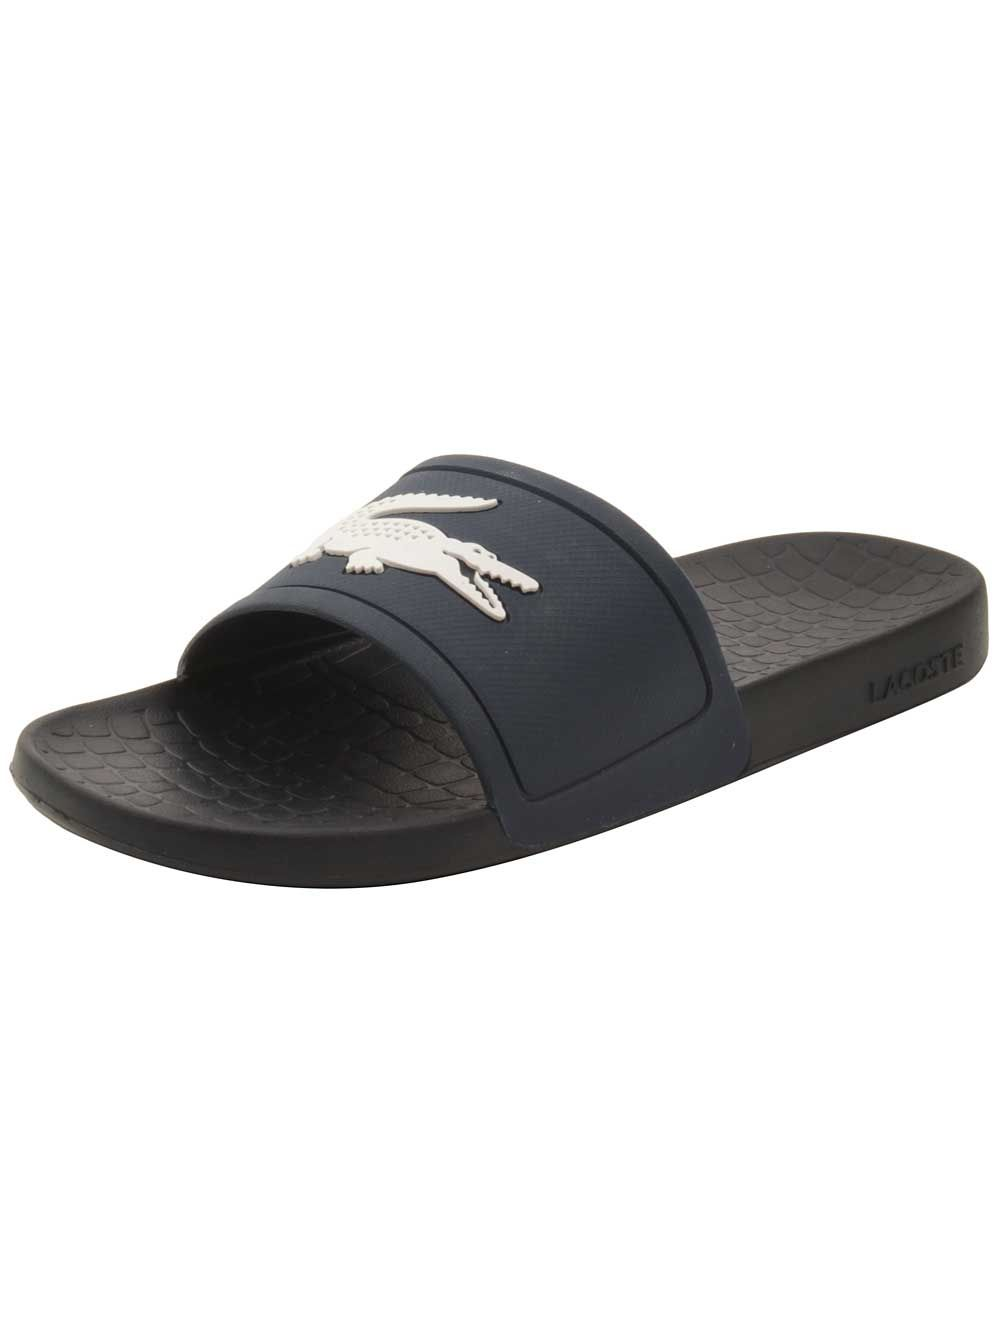 05a09dad502a LACOSTE LACOSTE MEN S FRAISIER 318 1 P SLIDE SANDAL.  lacoste  shoes ...